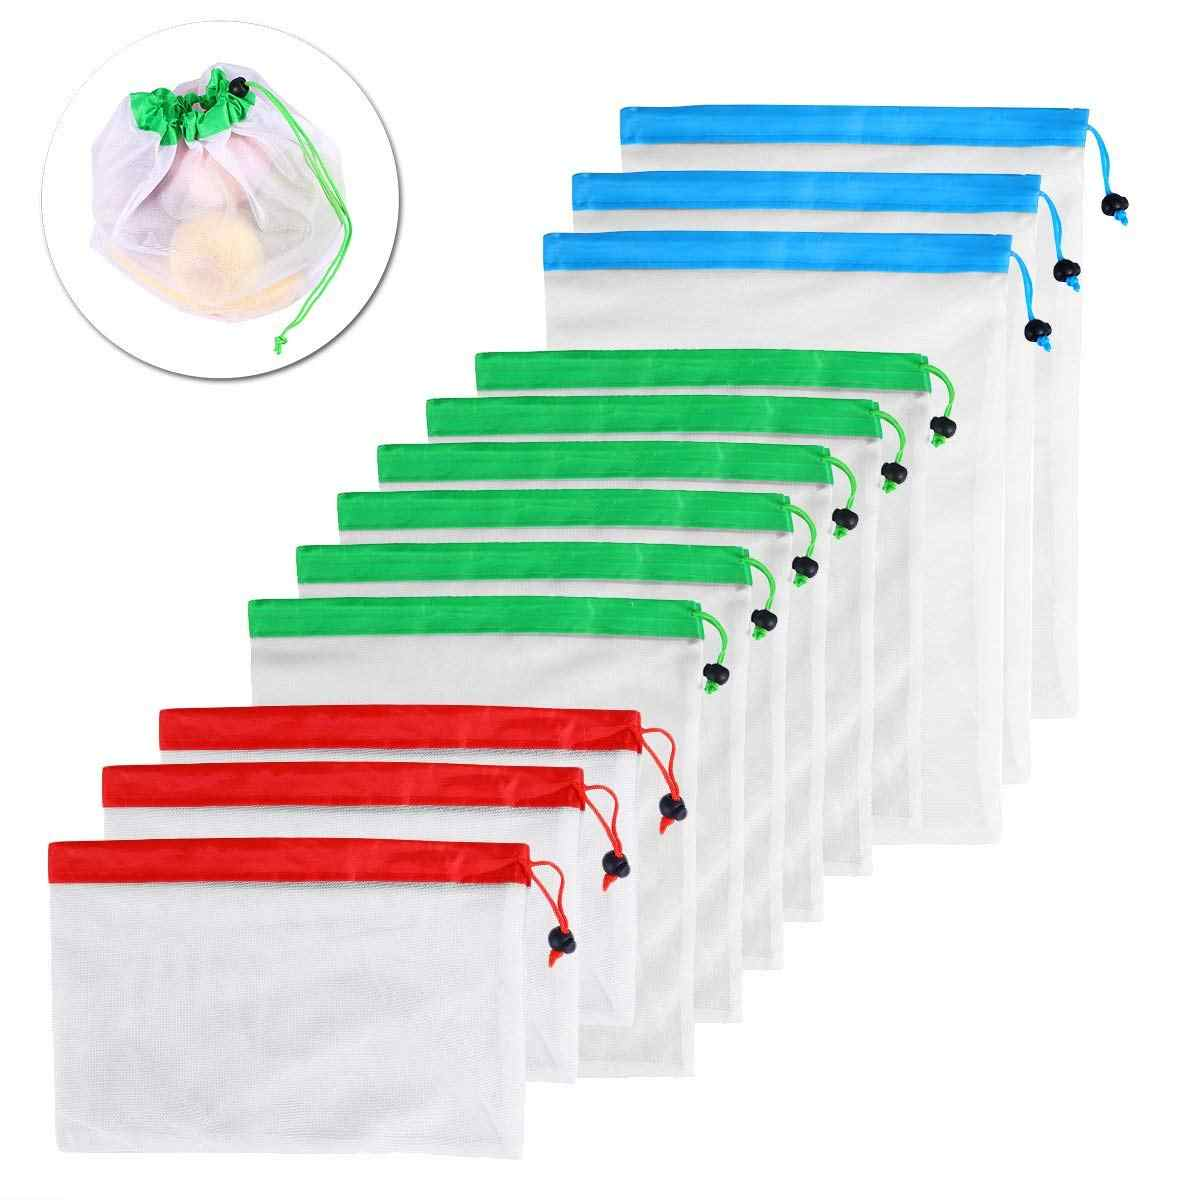 DCOS 12pcs Reusable Mesh Produce Bags Washable Eco Friendly Bags for Grocery Shopping Storage Fruit Vegetable Toys